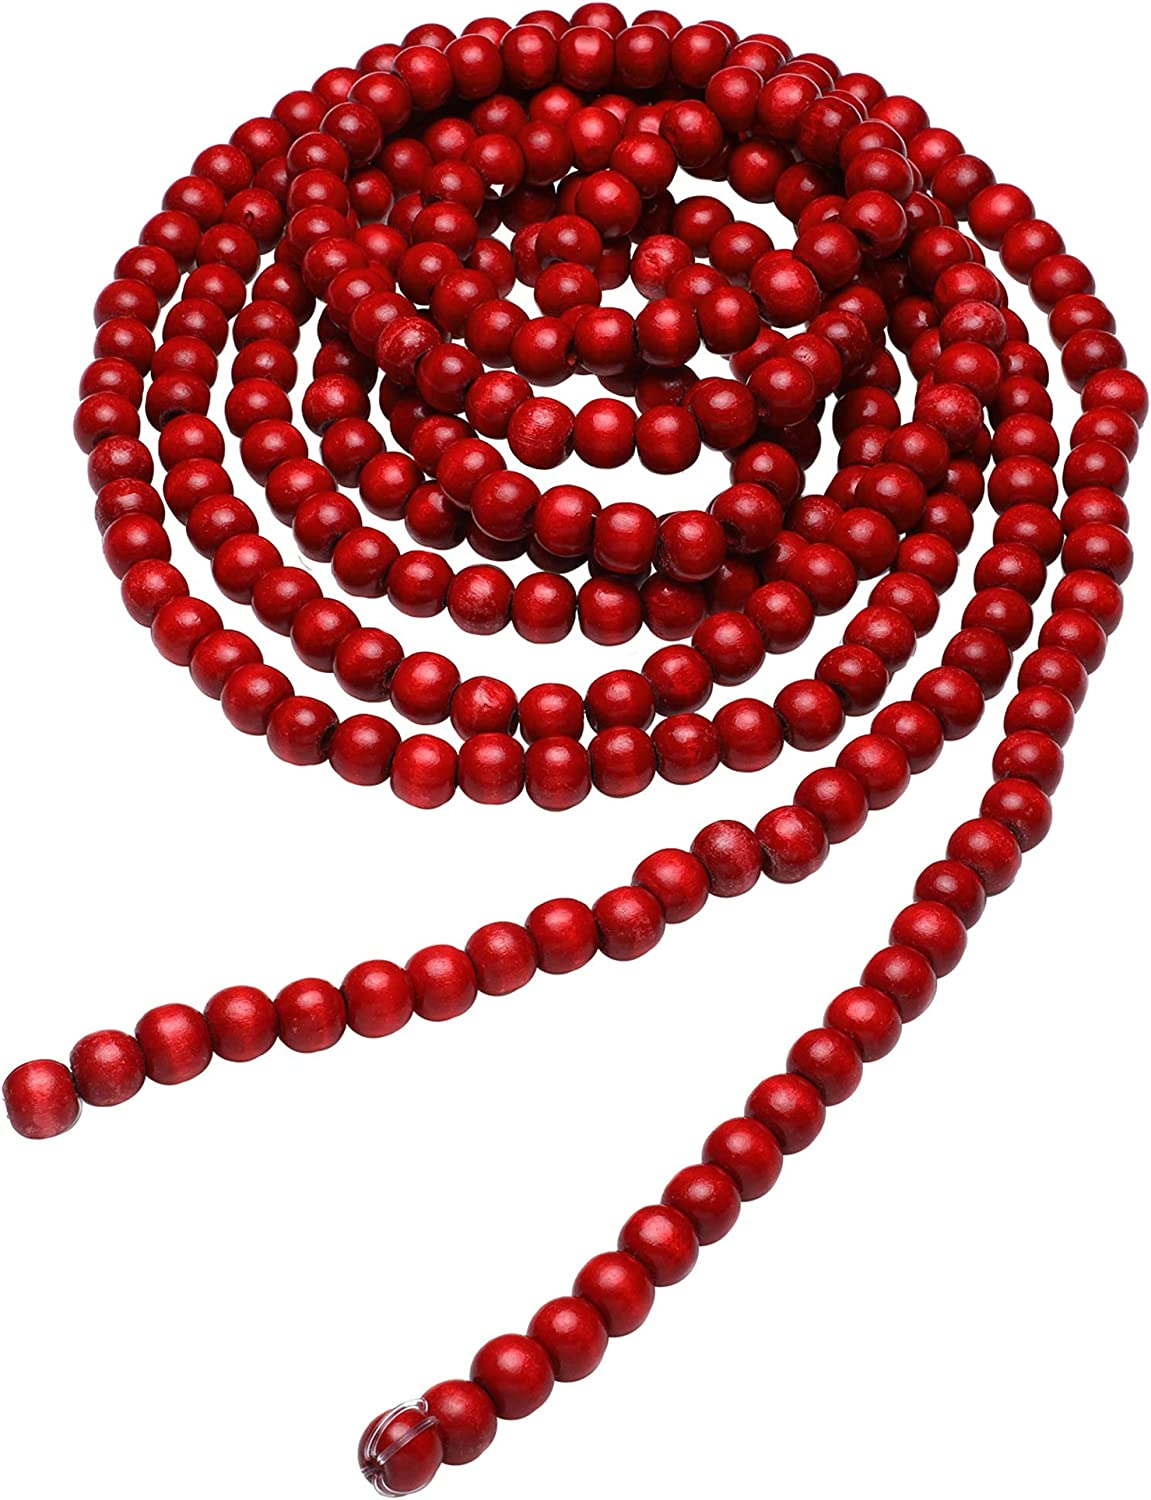 Hicarer Christmas Wooden Bead Garland Red Wood Bead Garland Christmas Tree Decorations for Christmas Holiday Favors, 12 Feet (Red)